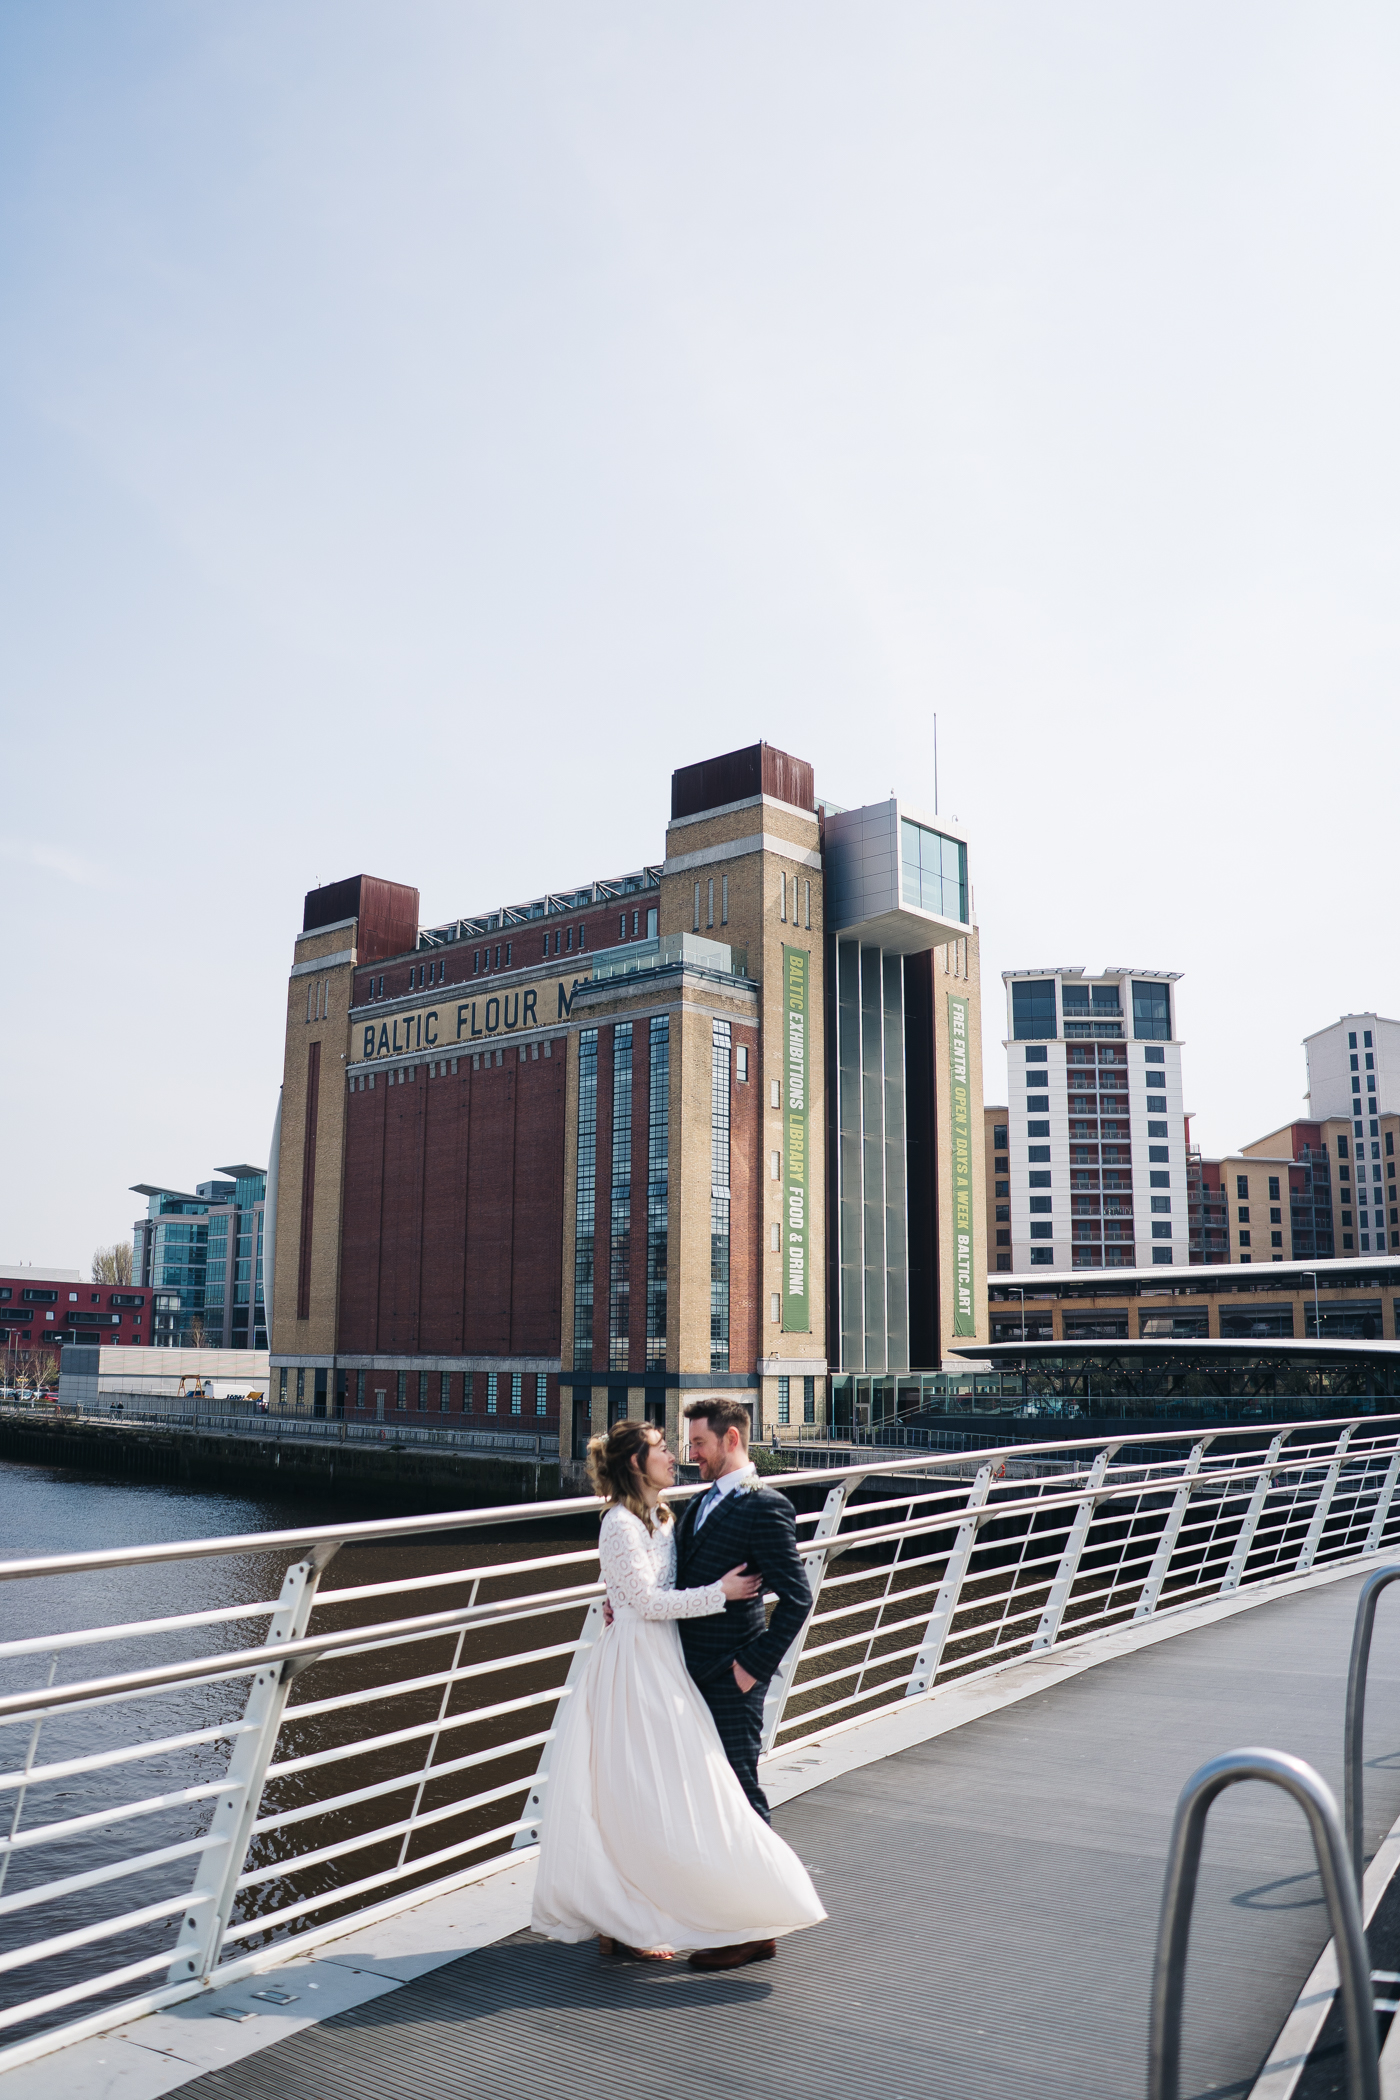 a shot of the couple standing together with the baltic in the background. wedding at the baltic newcastle gateshead north east photographer